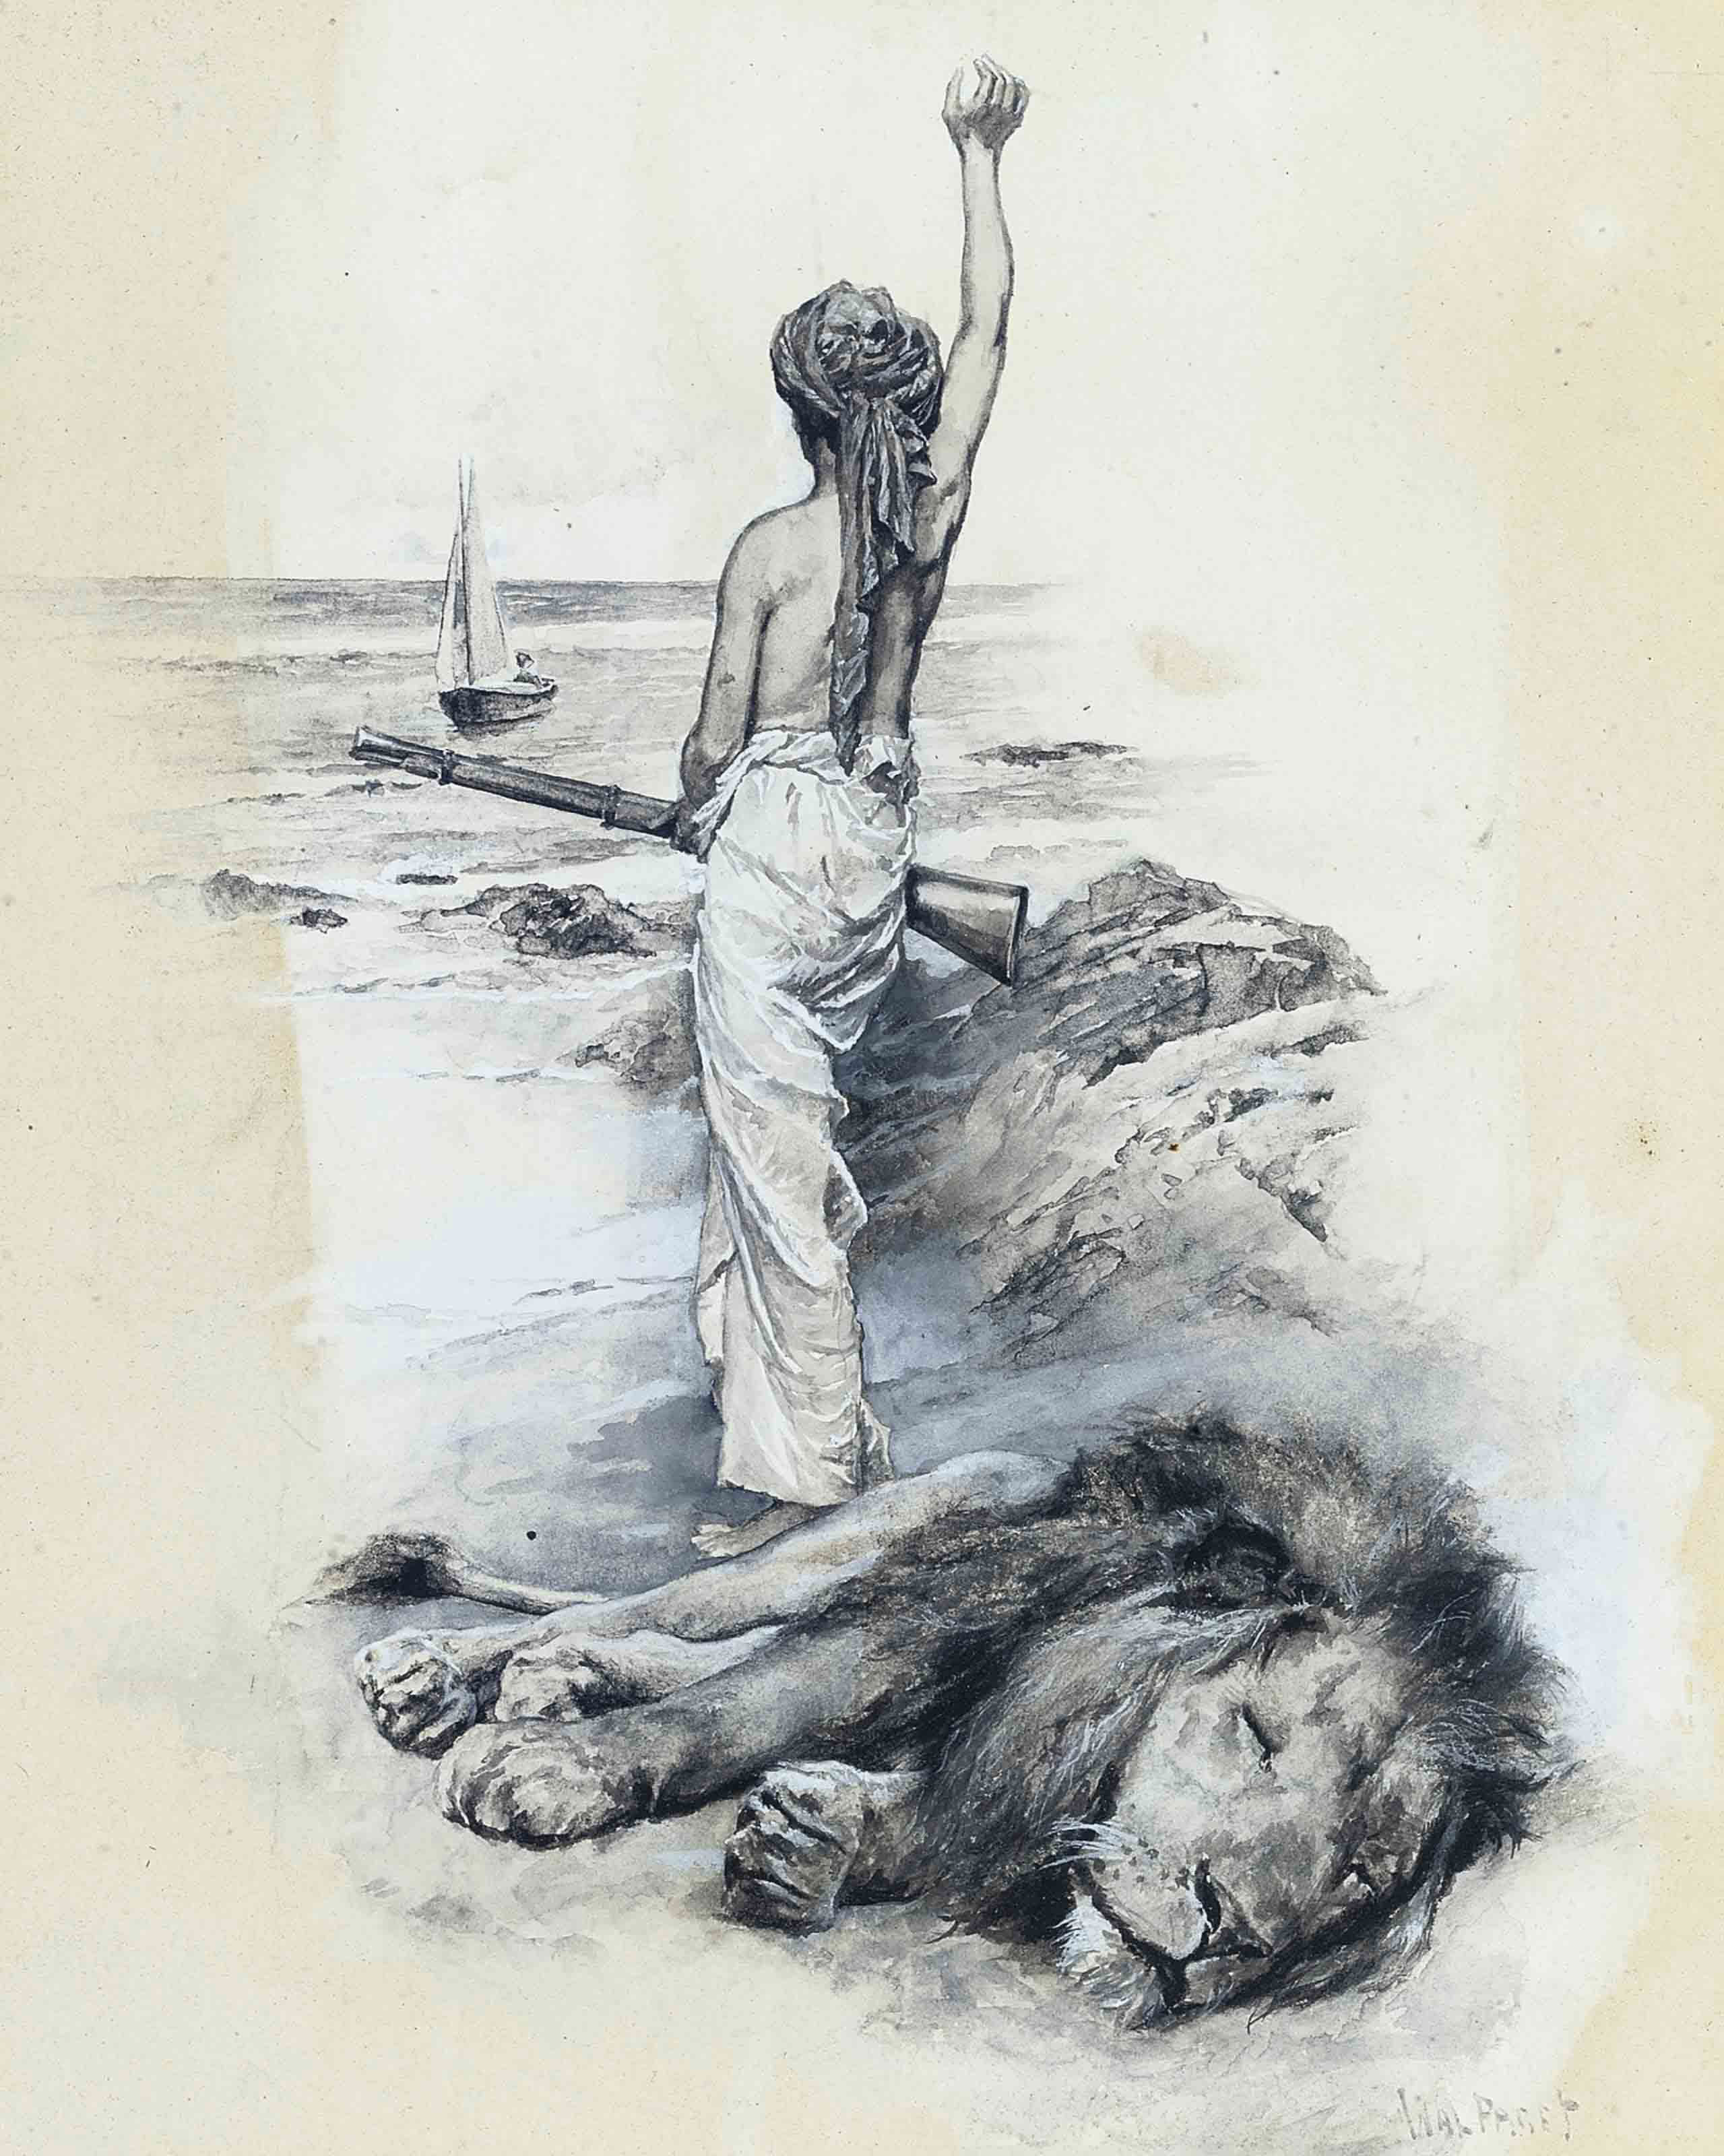 'This was game indeed': Frontispiece to Robinson Crusoe, 1896